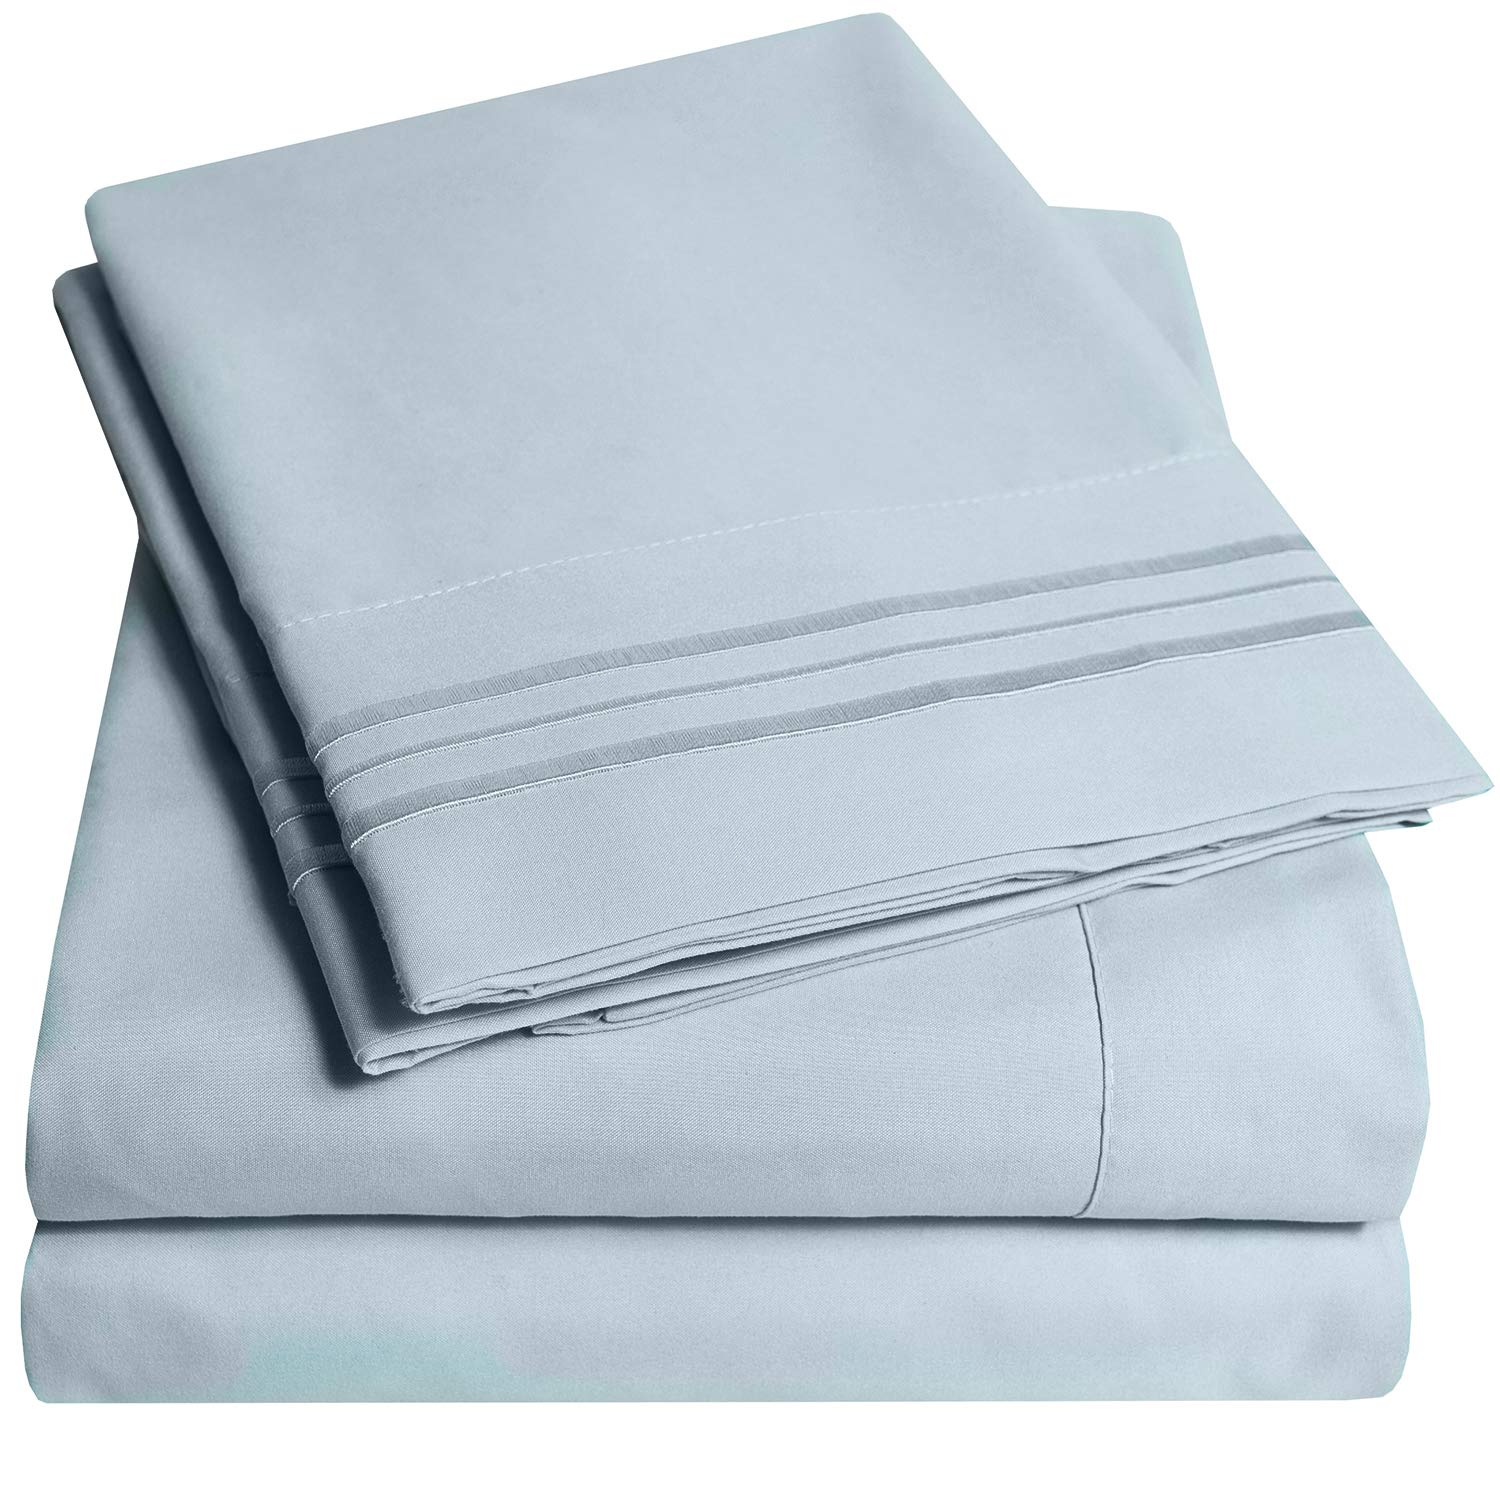 1500 Supreme Collection Extra Soft Full Sheets Set, Misty Blue - Luxury Bed Sheets Set with Deep Pocket Wrinkle Free Hypoallergenic Bedding, Over 40 Colors, Full Size, Misty Blue